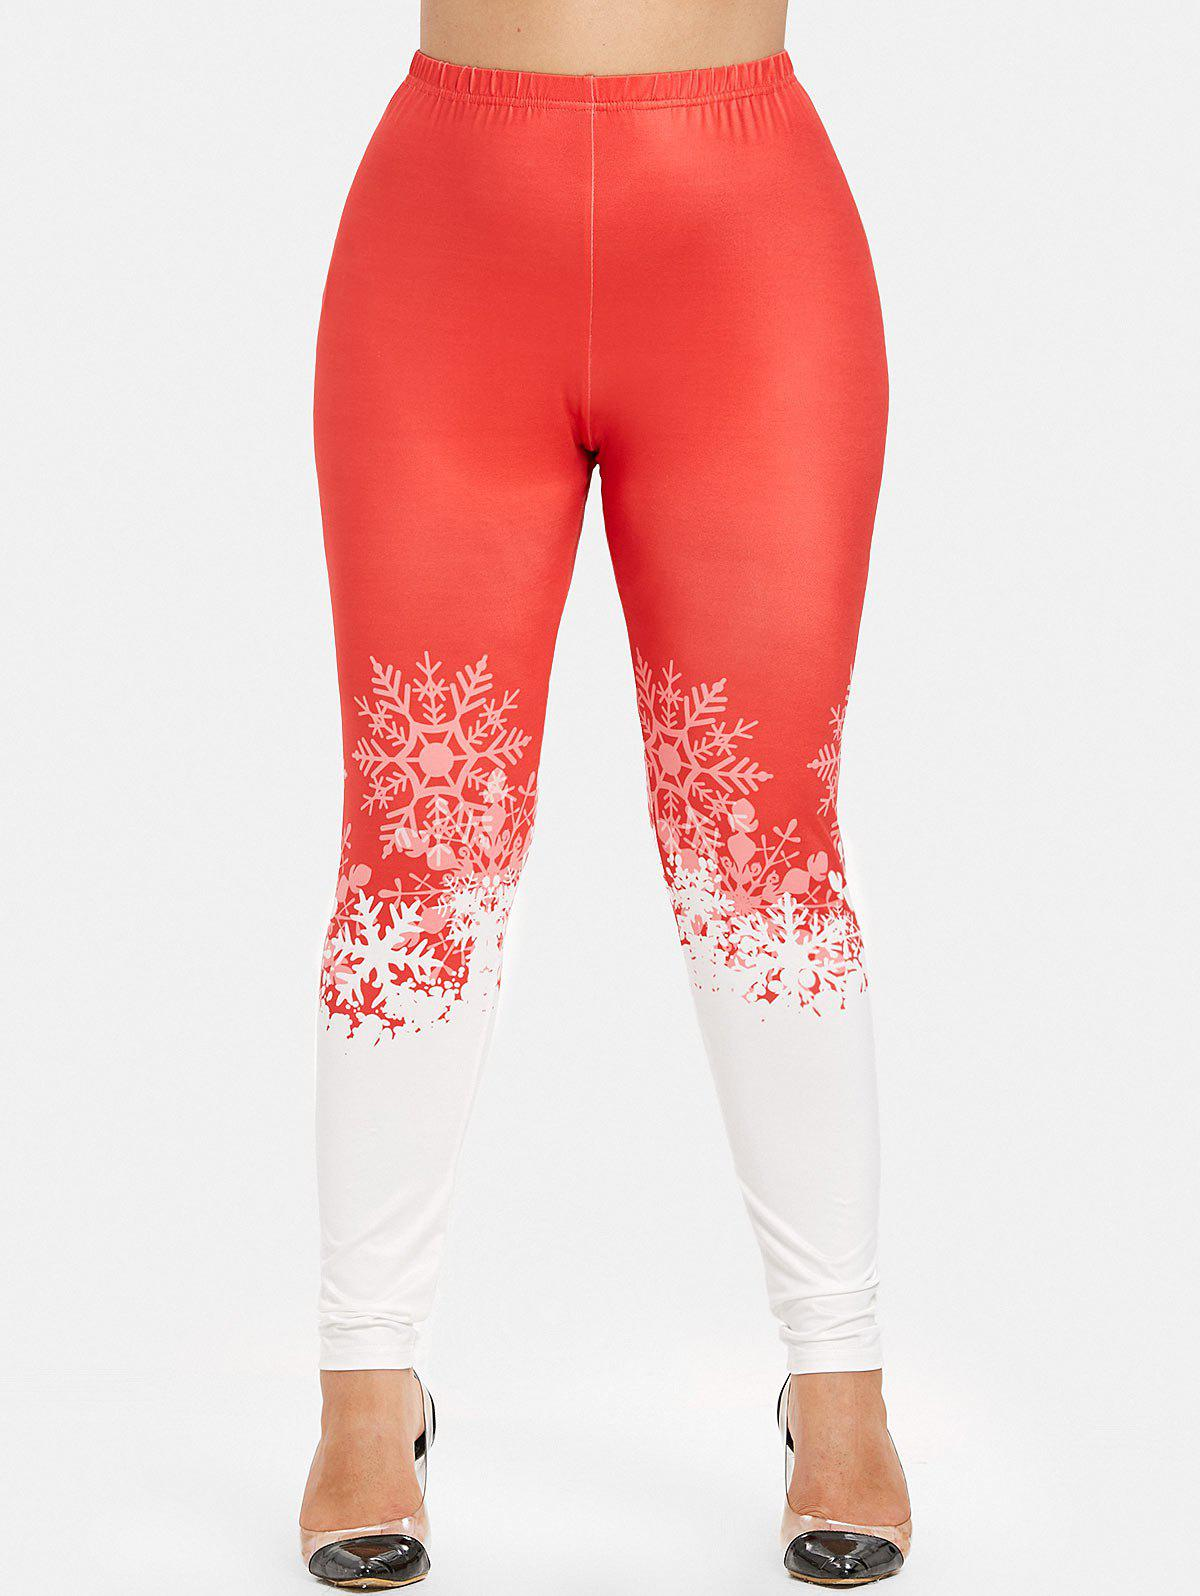 Buy Christmas Plus Size Skinny Leggings